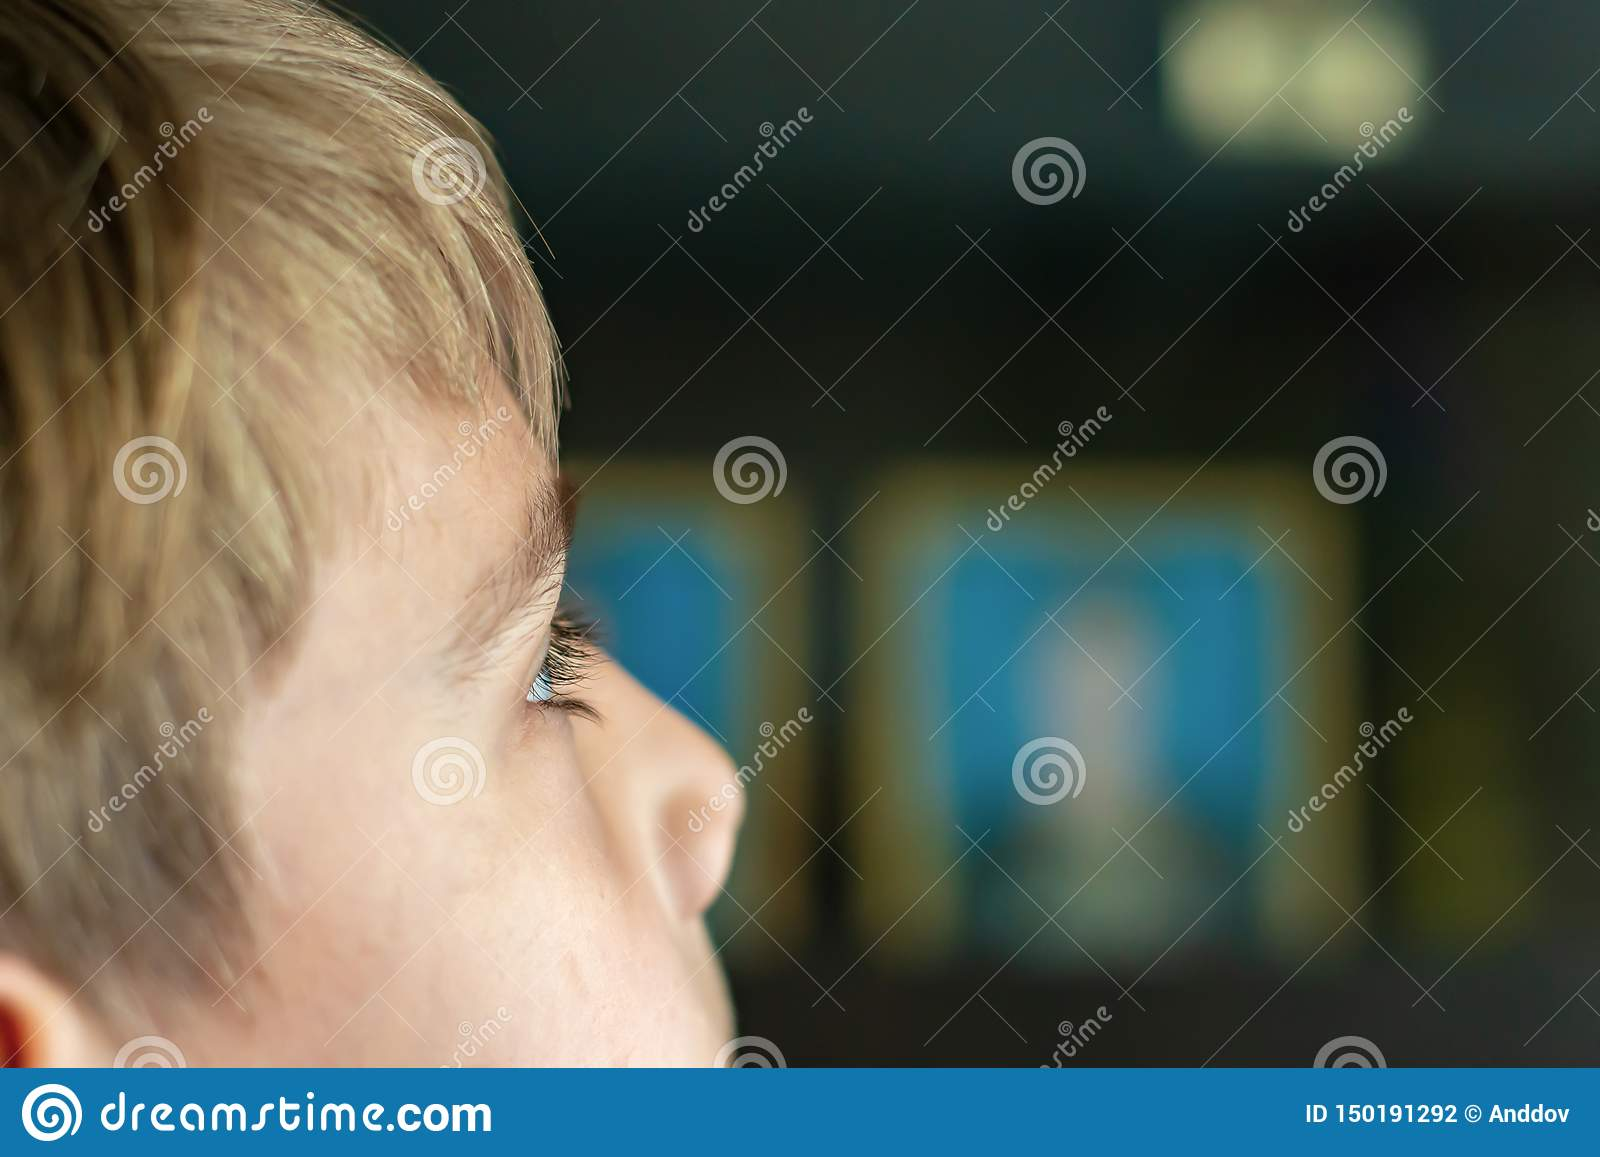 The boy is watching TV, the child`s eyes are close up, against the background of a working television